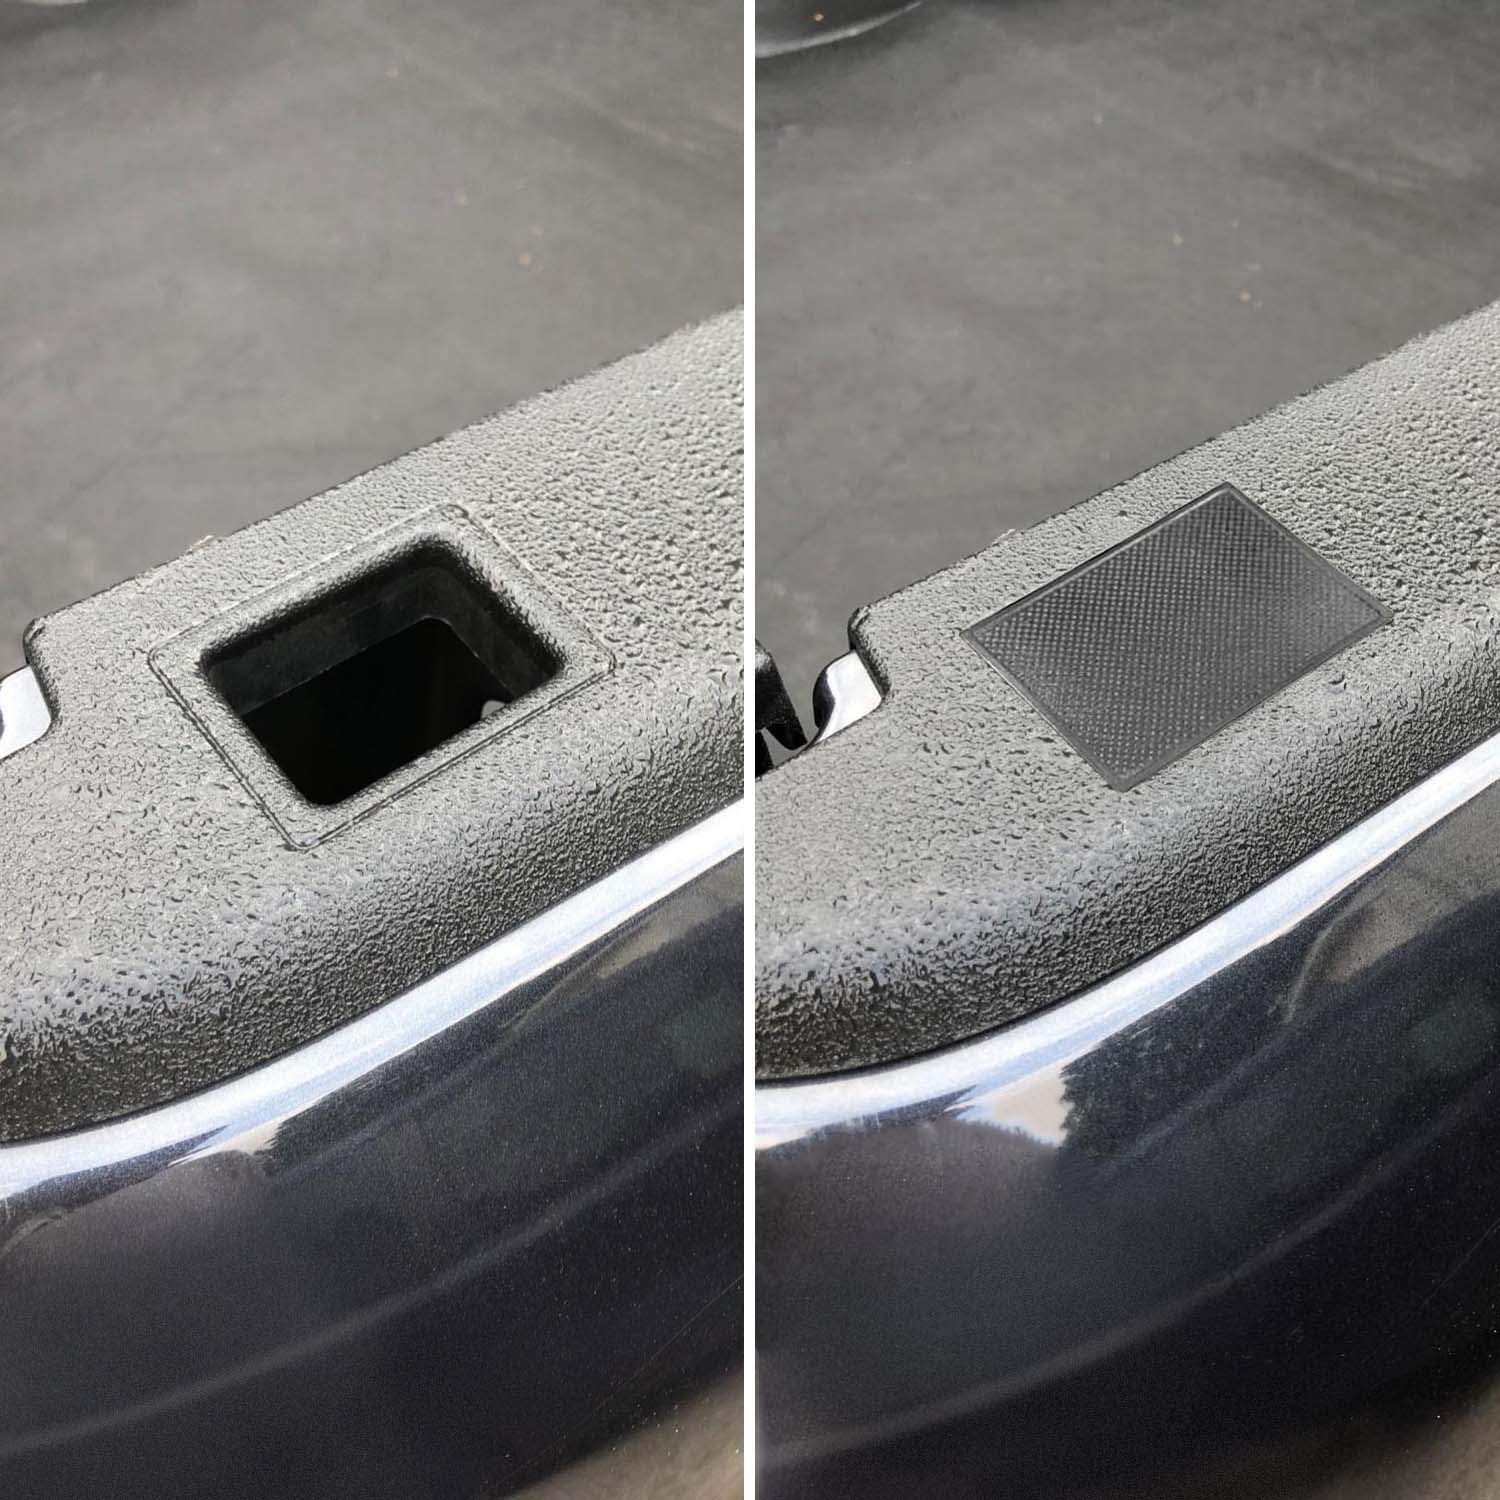 IBACP Fits for 2009-2018 Dodge Ram 1500 2500 3500 Stake Pocket Cover Accessories Truck Bed Rail Covers Caps Rail Hole Plugs A Pair